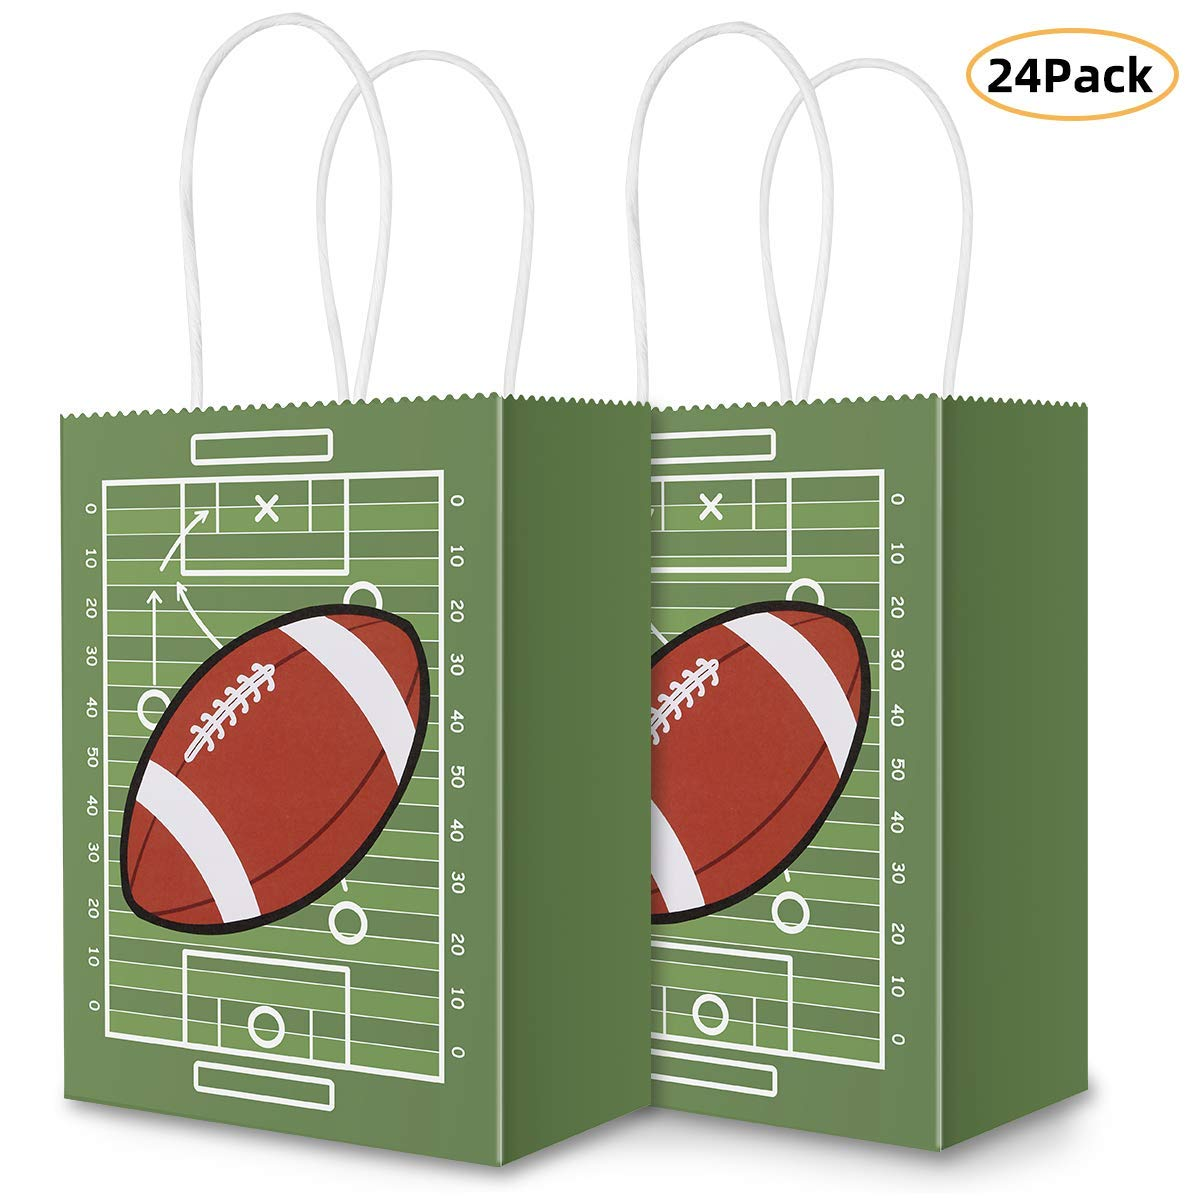 Football Party Bags Gift Bag Kraft Bag with Handle for Birthday,Football Goodie Bags,Football Theme Party Favor bags and and Football Party Celebrations(24Pack) by Sumapner